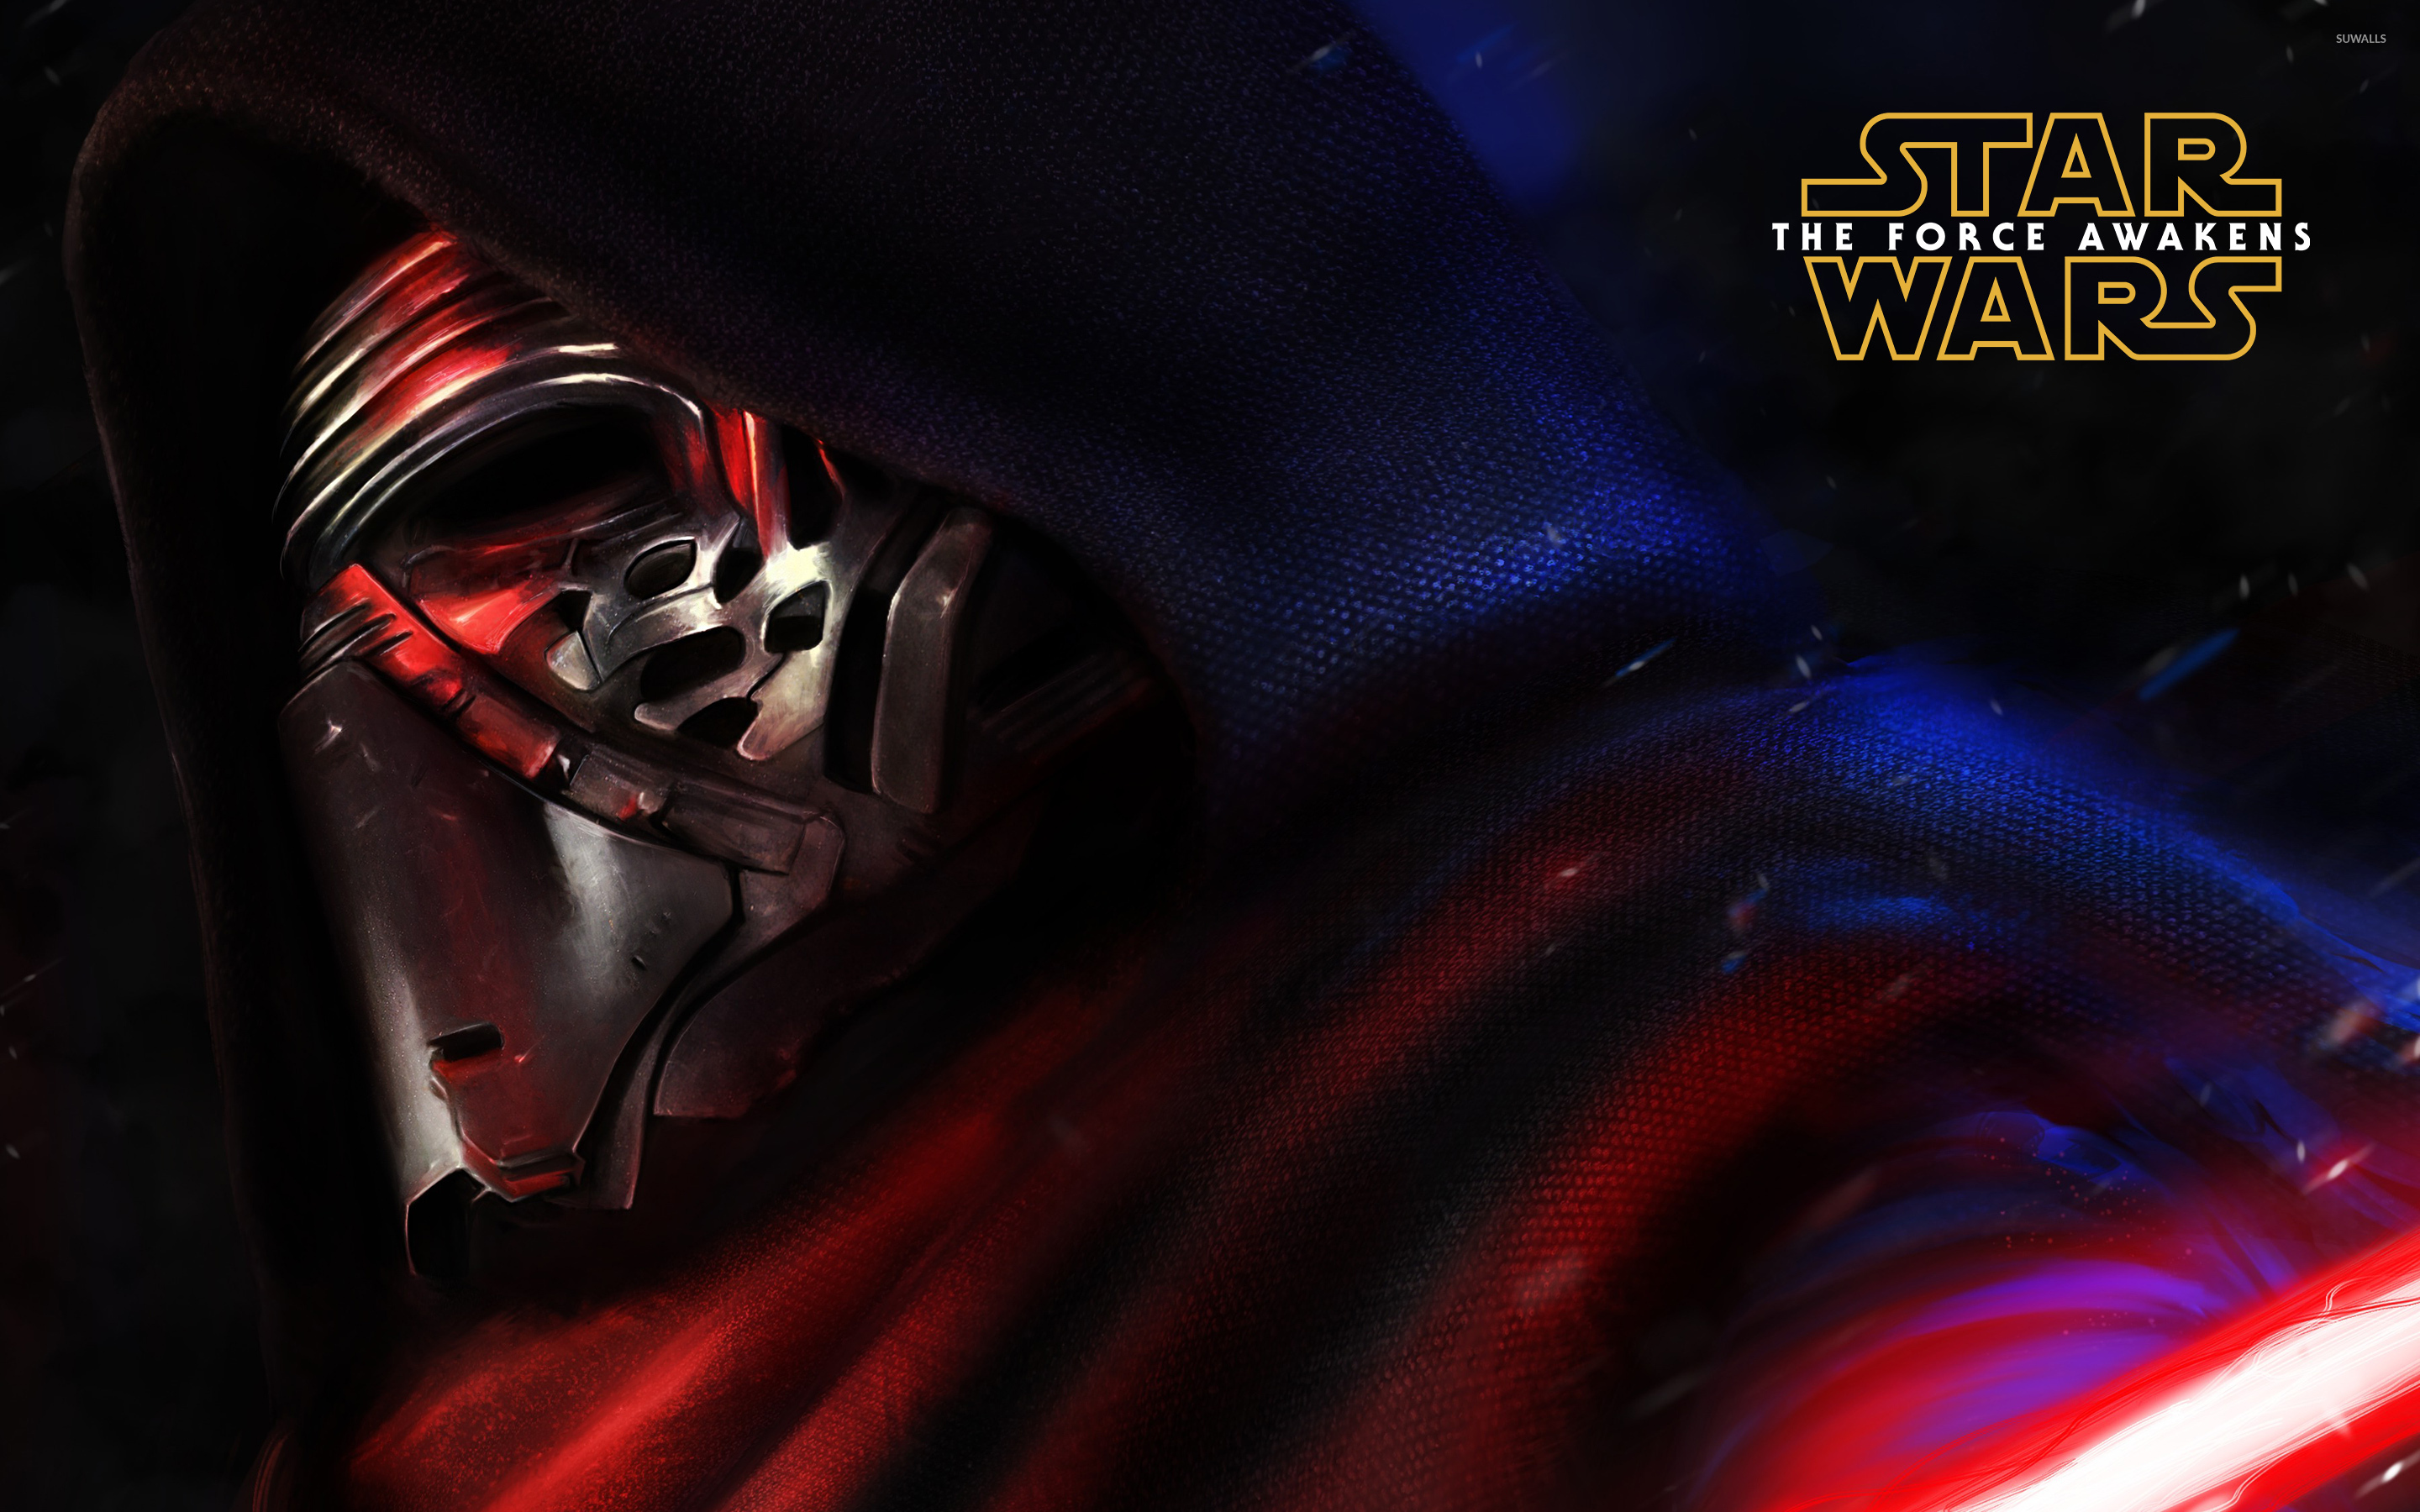 Kylo Ren Close Up Star Wars The Force Awakens Wallpaper Movie